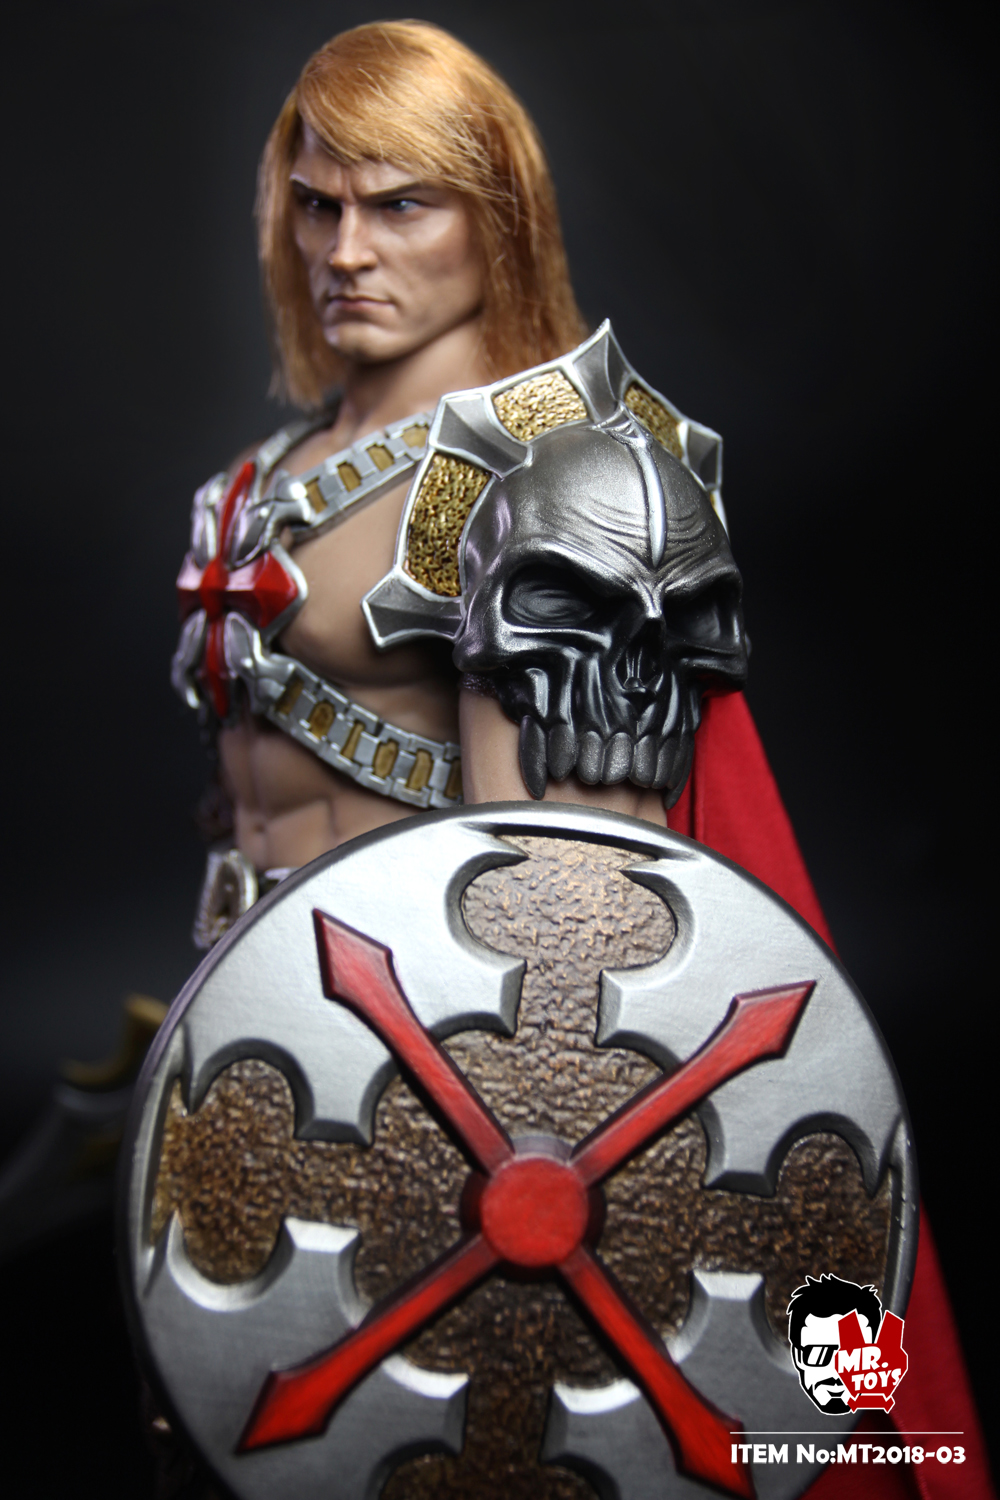 NEW PRODUCT: Mr. Toys MT2018-03 1/6 He-Man head carving costume set O1cn0124